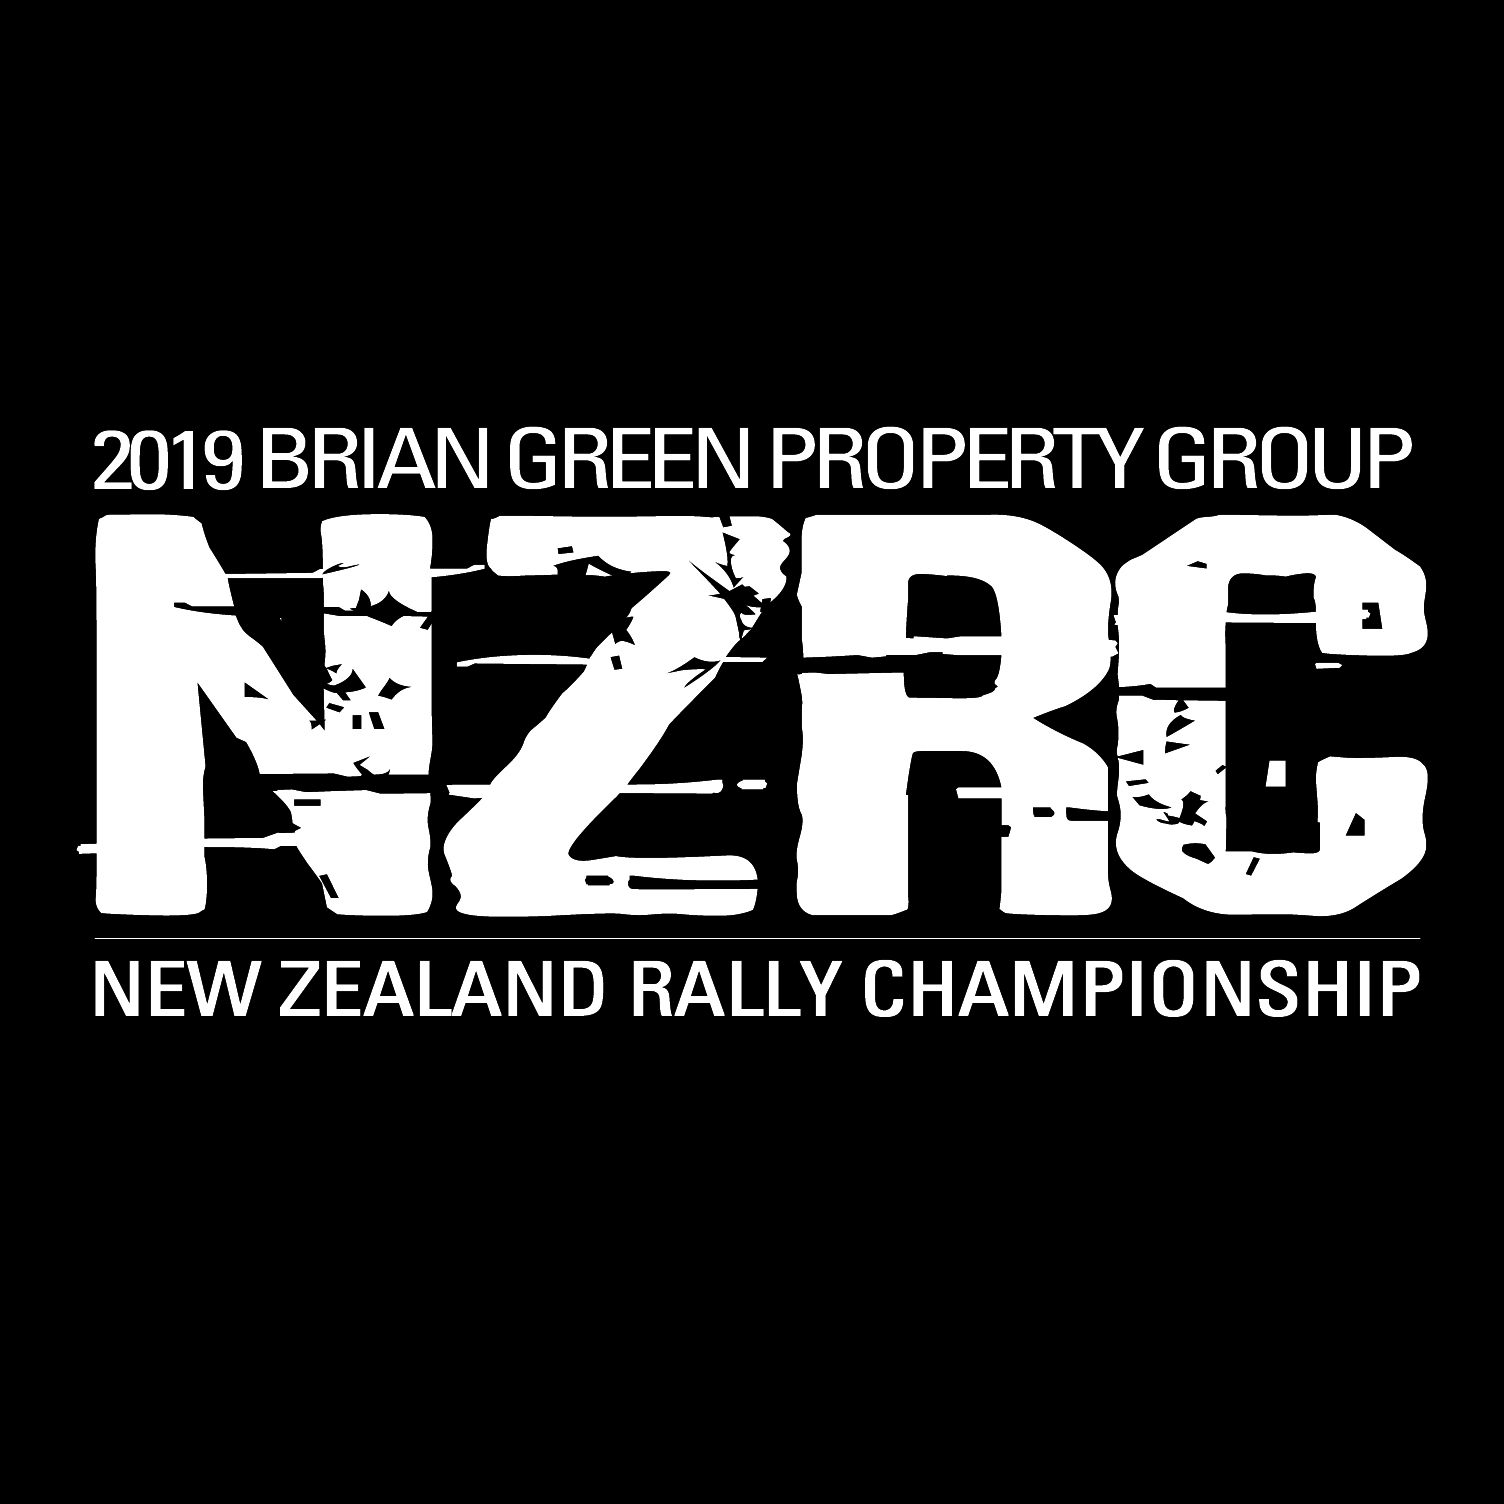 News & Media | :: Brian Green Property Group New Zealand Rally Championship ::